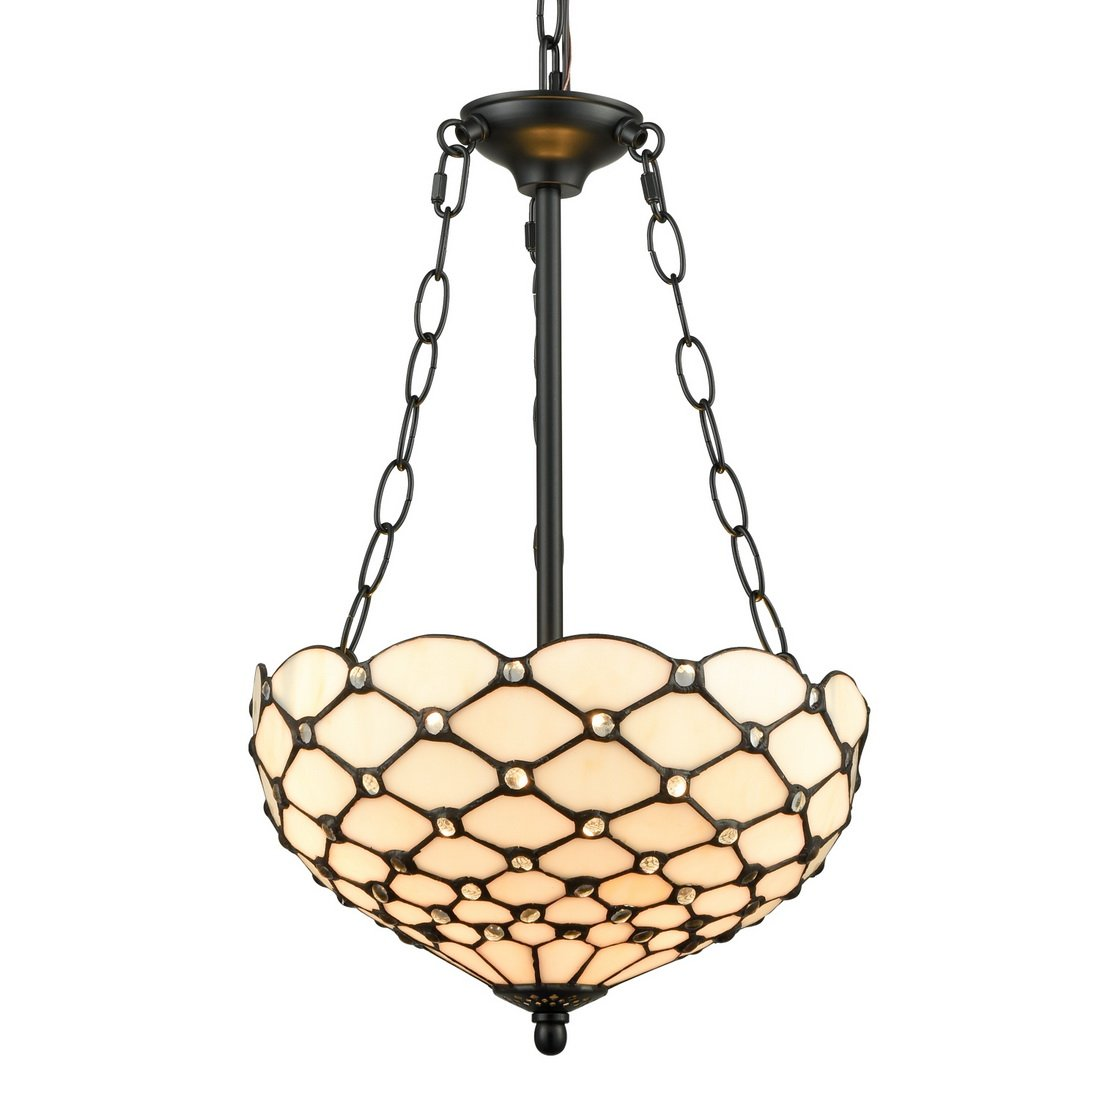 EUL Tiffany Style Pendant Light Fixtures Antique Brass & Art Stained Glass Hanging Lampshade-3 Lights